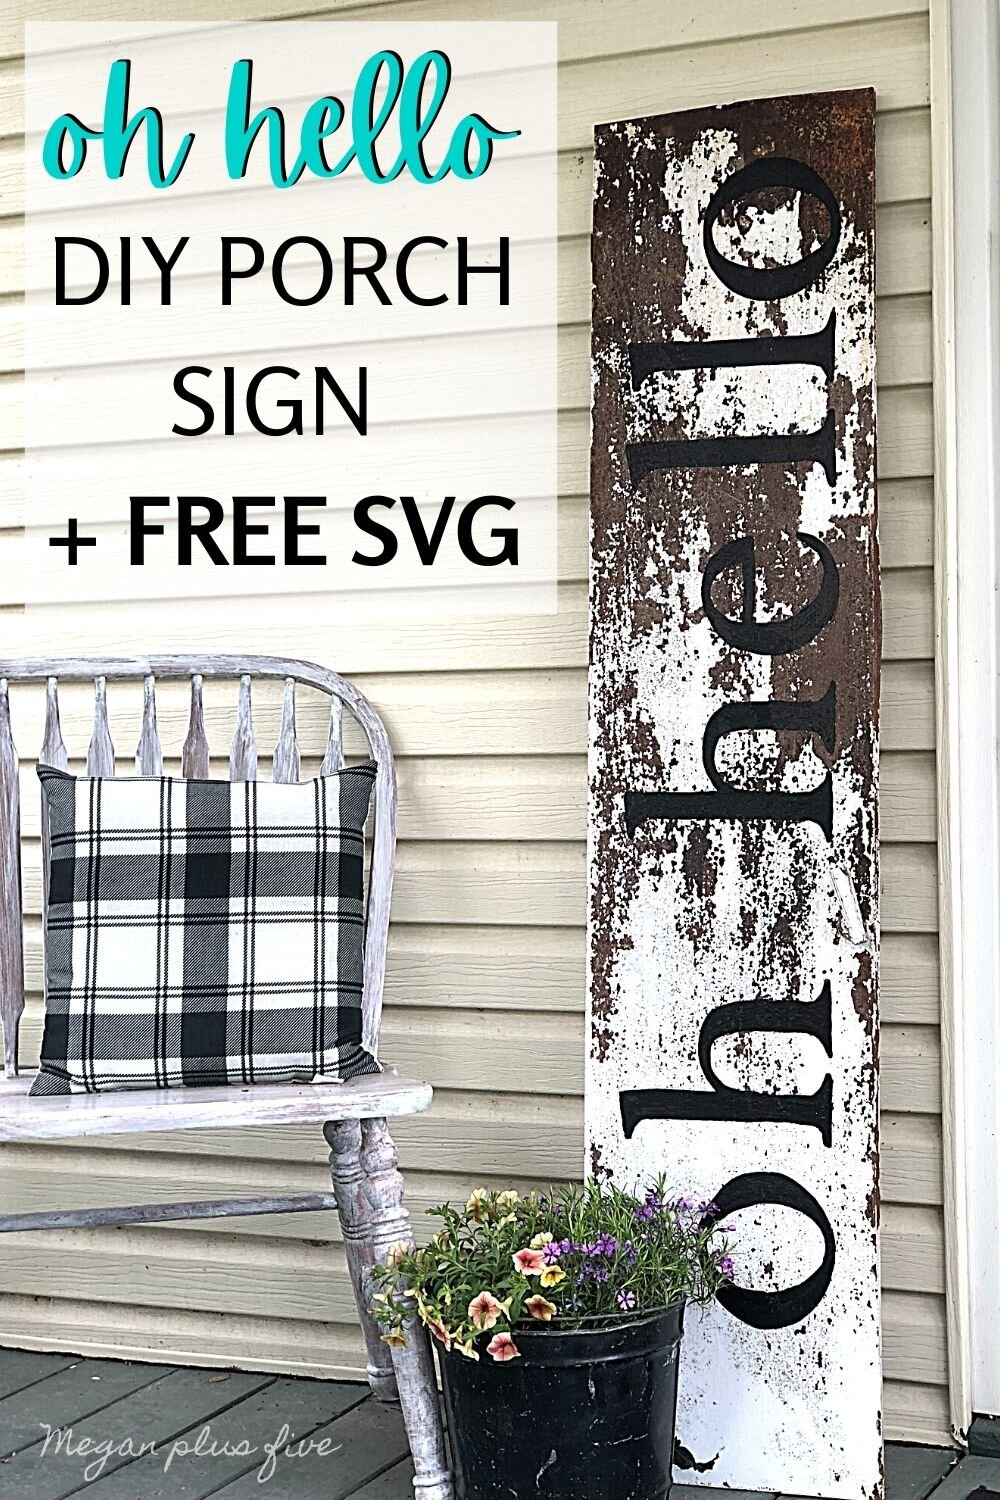 How to make a rustic farmhouse style front porch sign. DIY oh hello leaning porch sign using your Cricut or Silhouette cutting machine plus free svg.